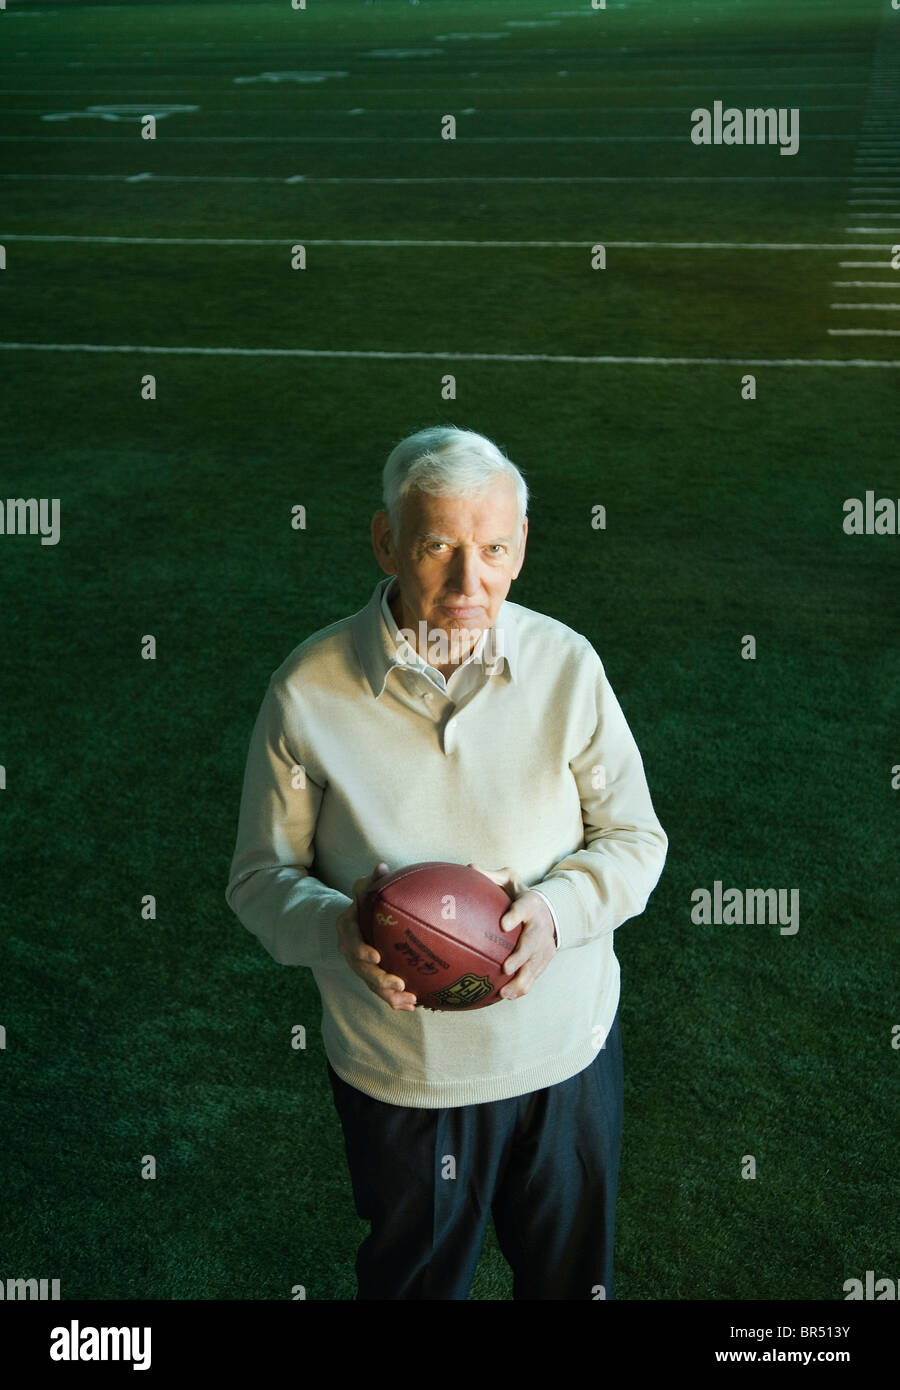 Dan Rooney owner of the Pittsburgh Steelers was nominated ambassador to Ireland today by president Barack Obama - Stock Image